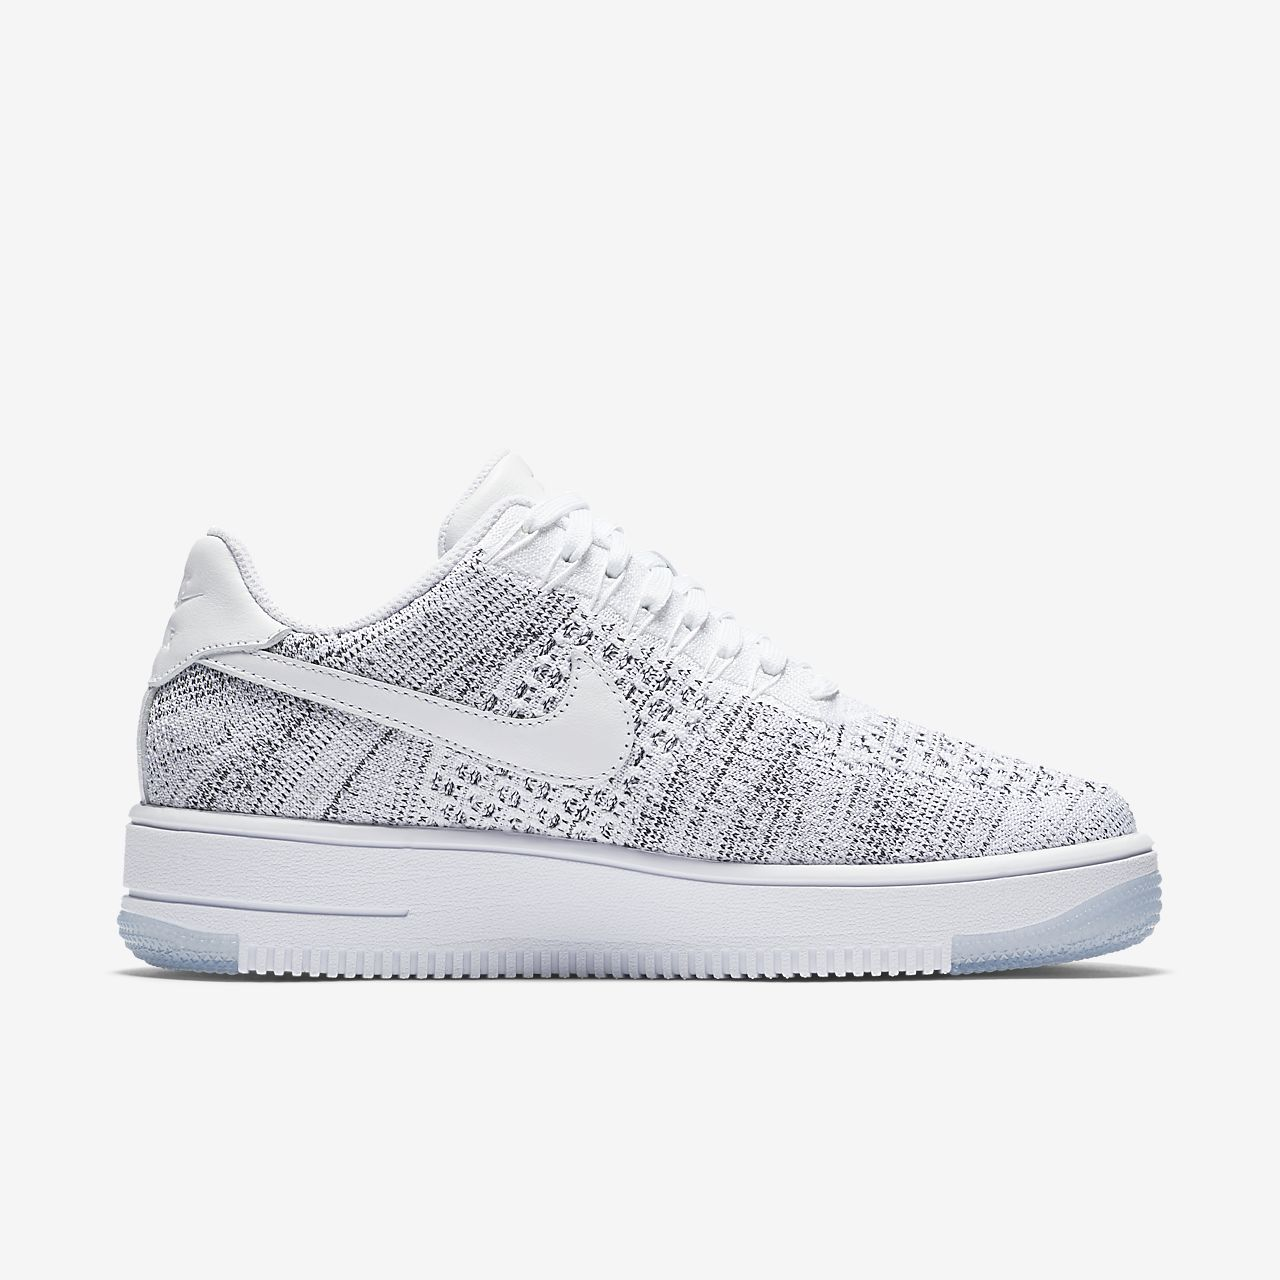 jordans air force 1 low nz